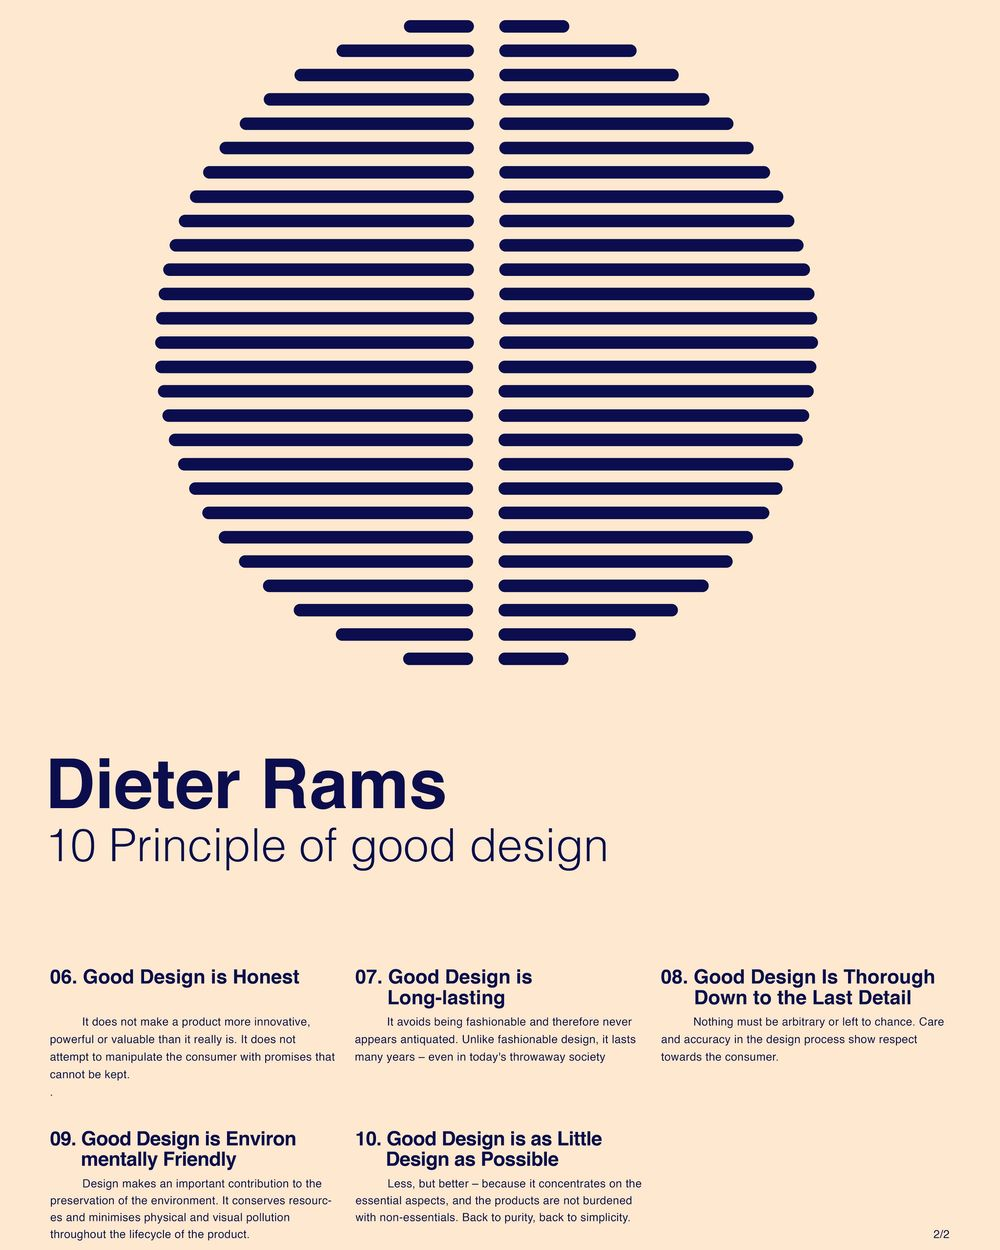 Rams and Vignellis Posters. - image 3 - student project